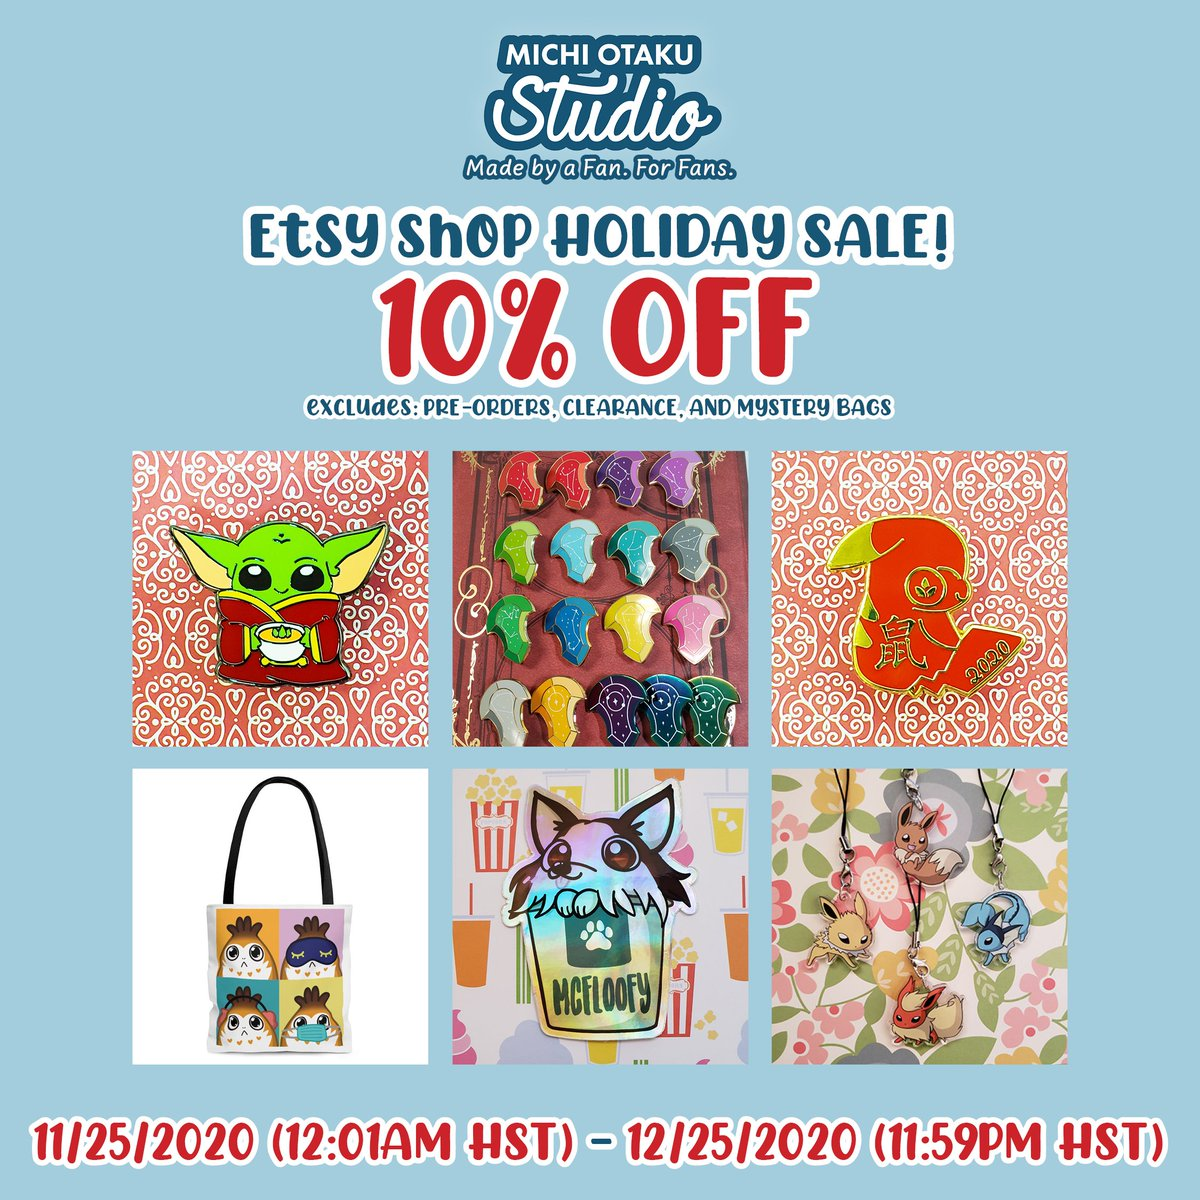 Happy #SmallBusinessSaturday~!  I have an ongoing 10% OFF sale in my #Etsy shop, for select items, as well as a #BlackFriday weekend code, BFOTAKUPIN20, to get 20% OFF on enamel pins listed!  Have a great weekend and stay safe & healthy!  RTs 🔄 appreciated~ 💕